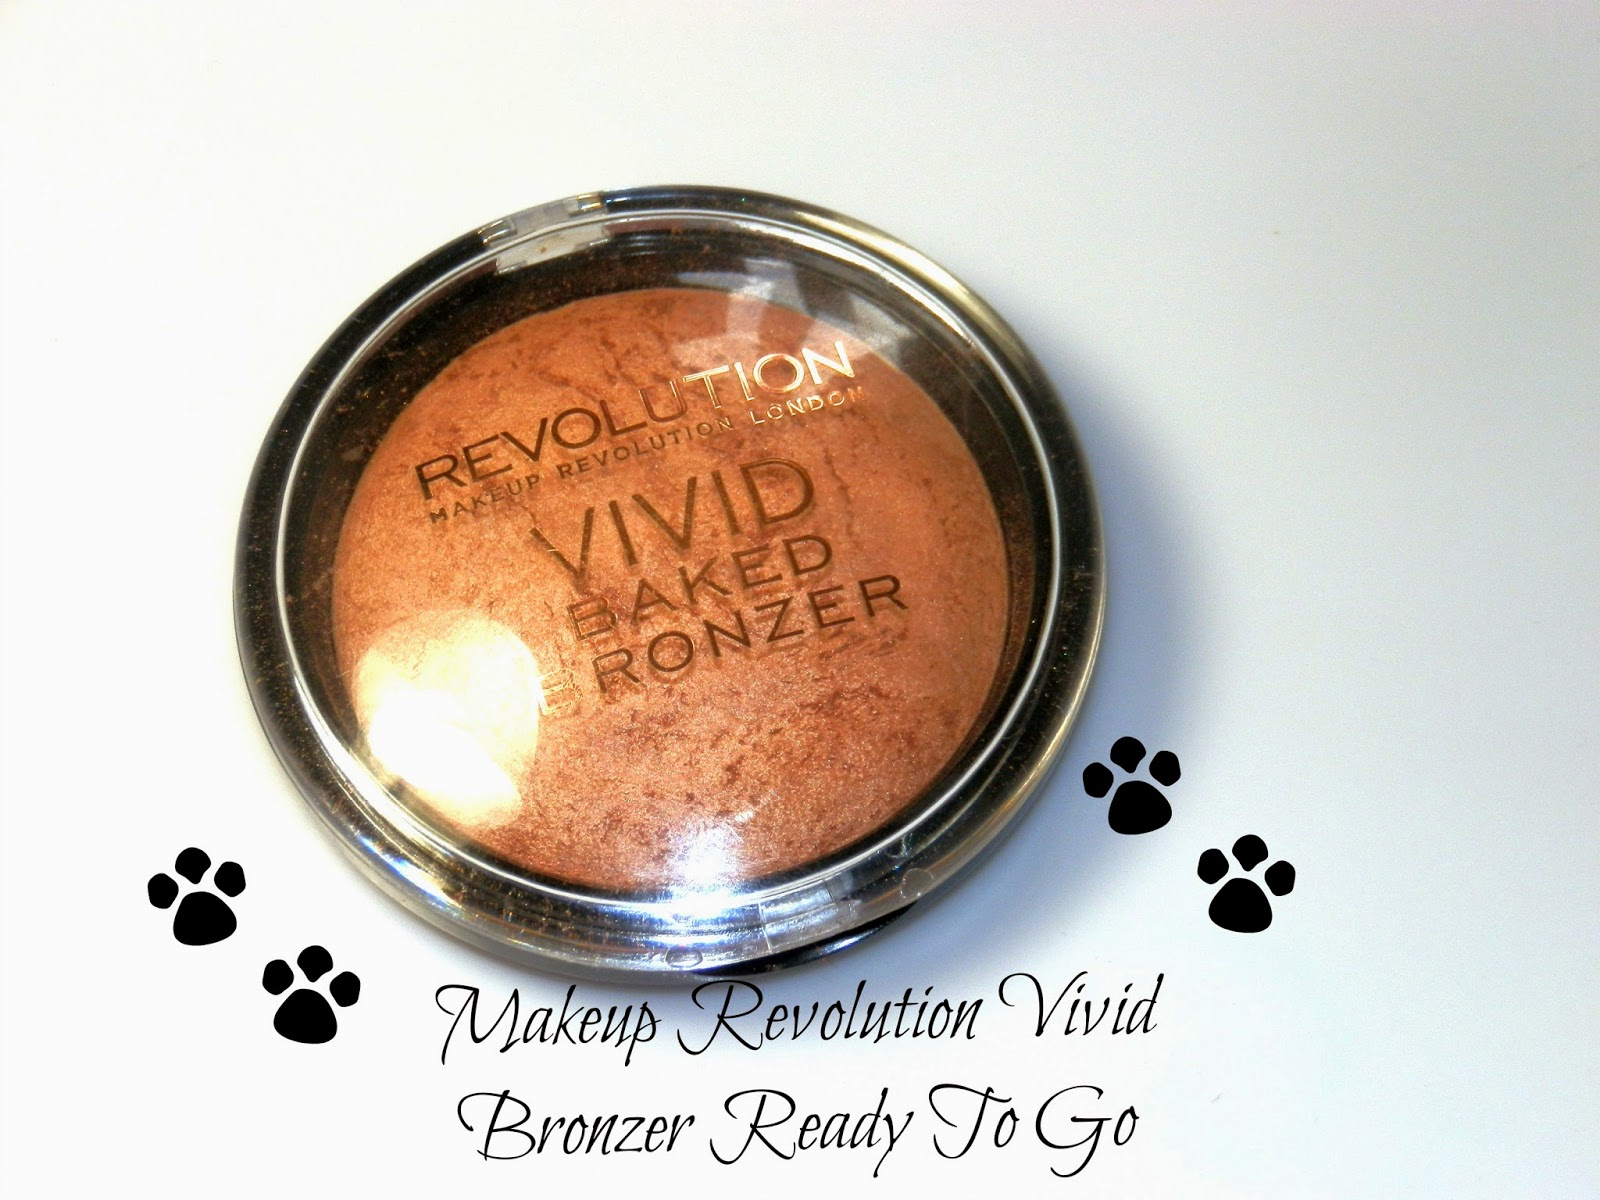 Makeup Revolution Vivid Bronzer Ready To Go Swatches